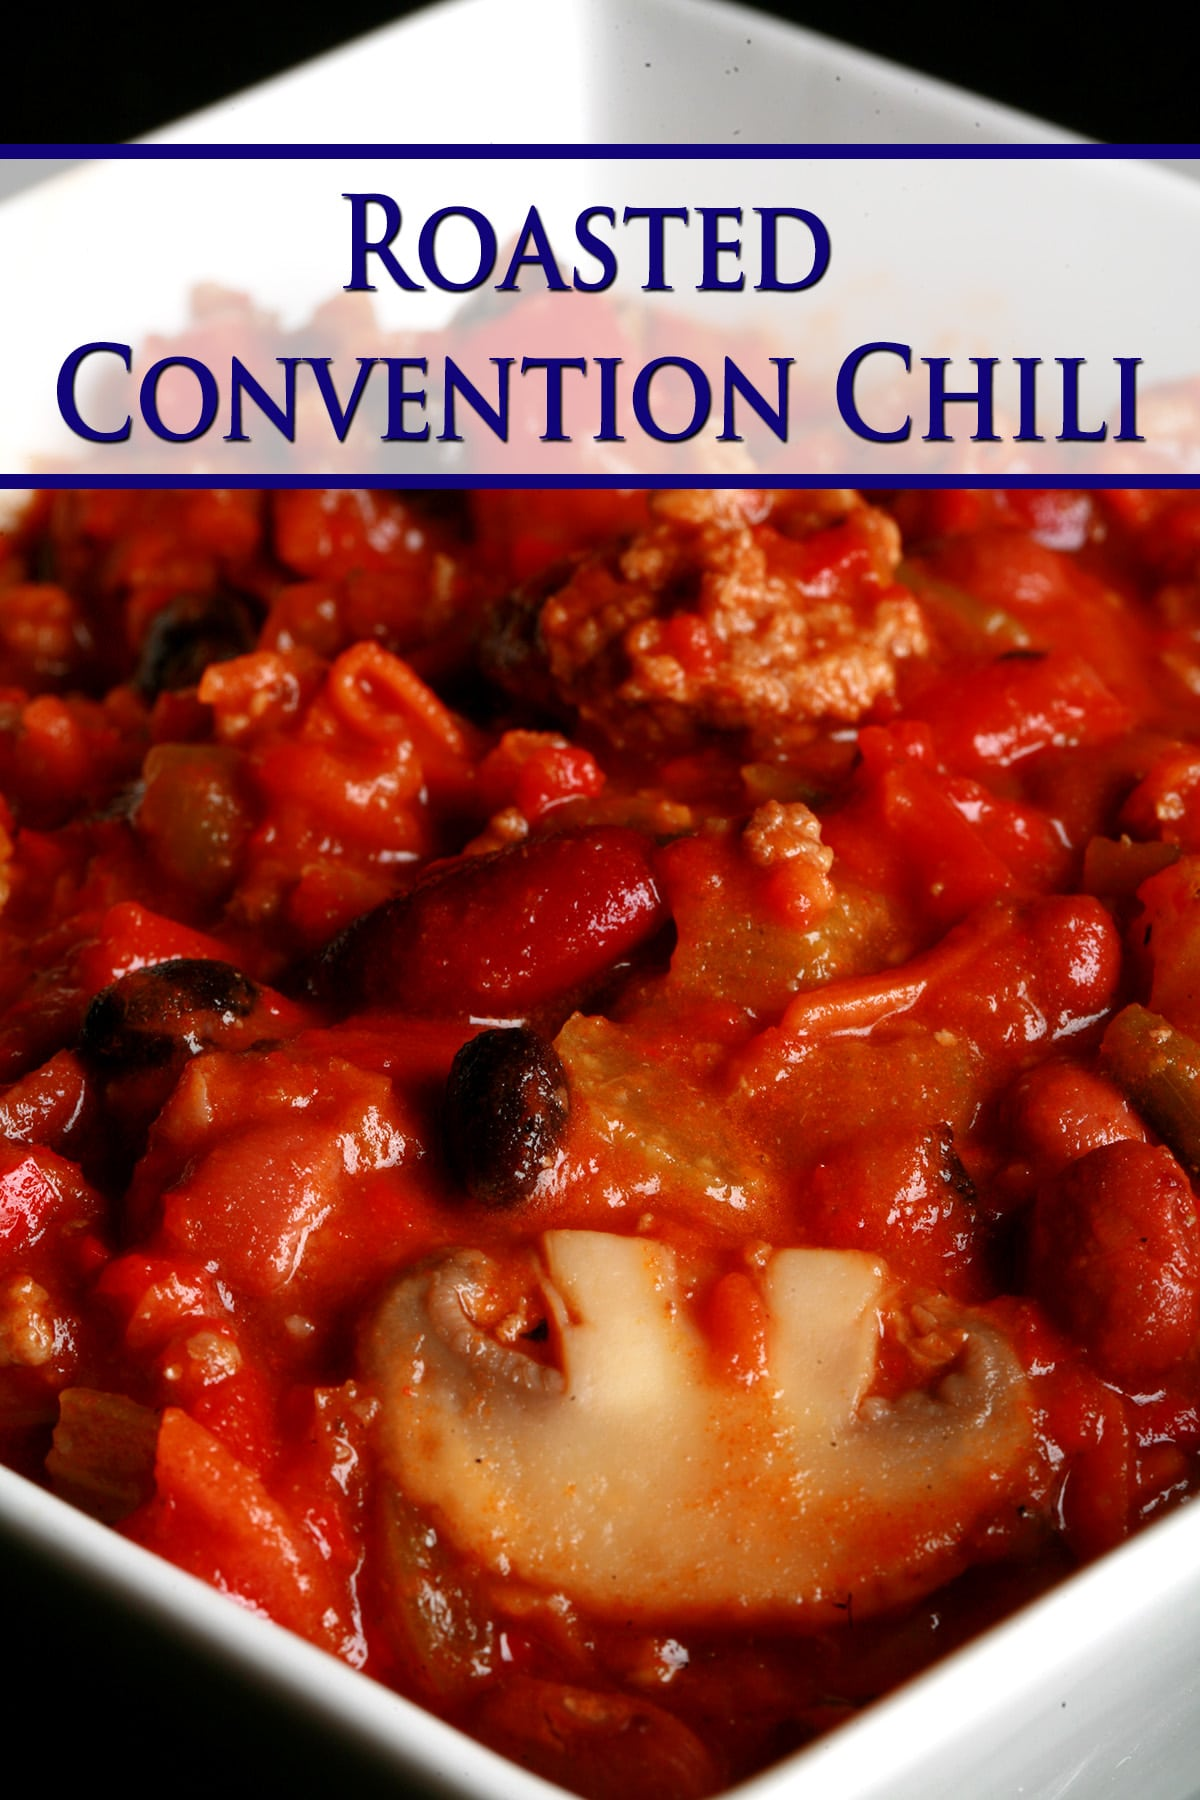 Close up photo of a bowl of roasted convention chili. Kidney beans, ground beef, mushrooms, celery, and red peppers are visible.